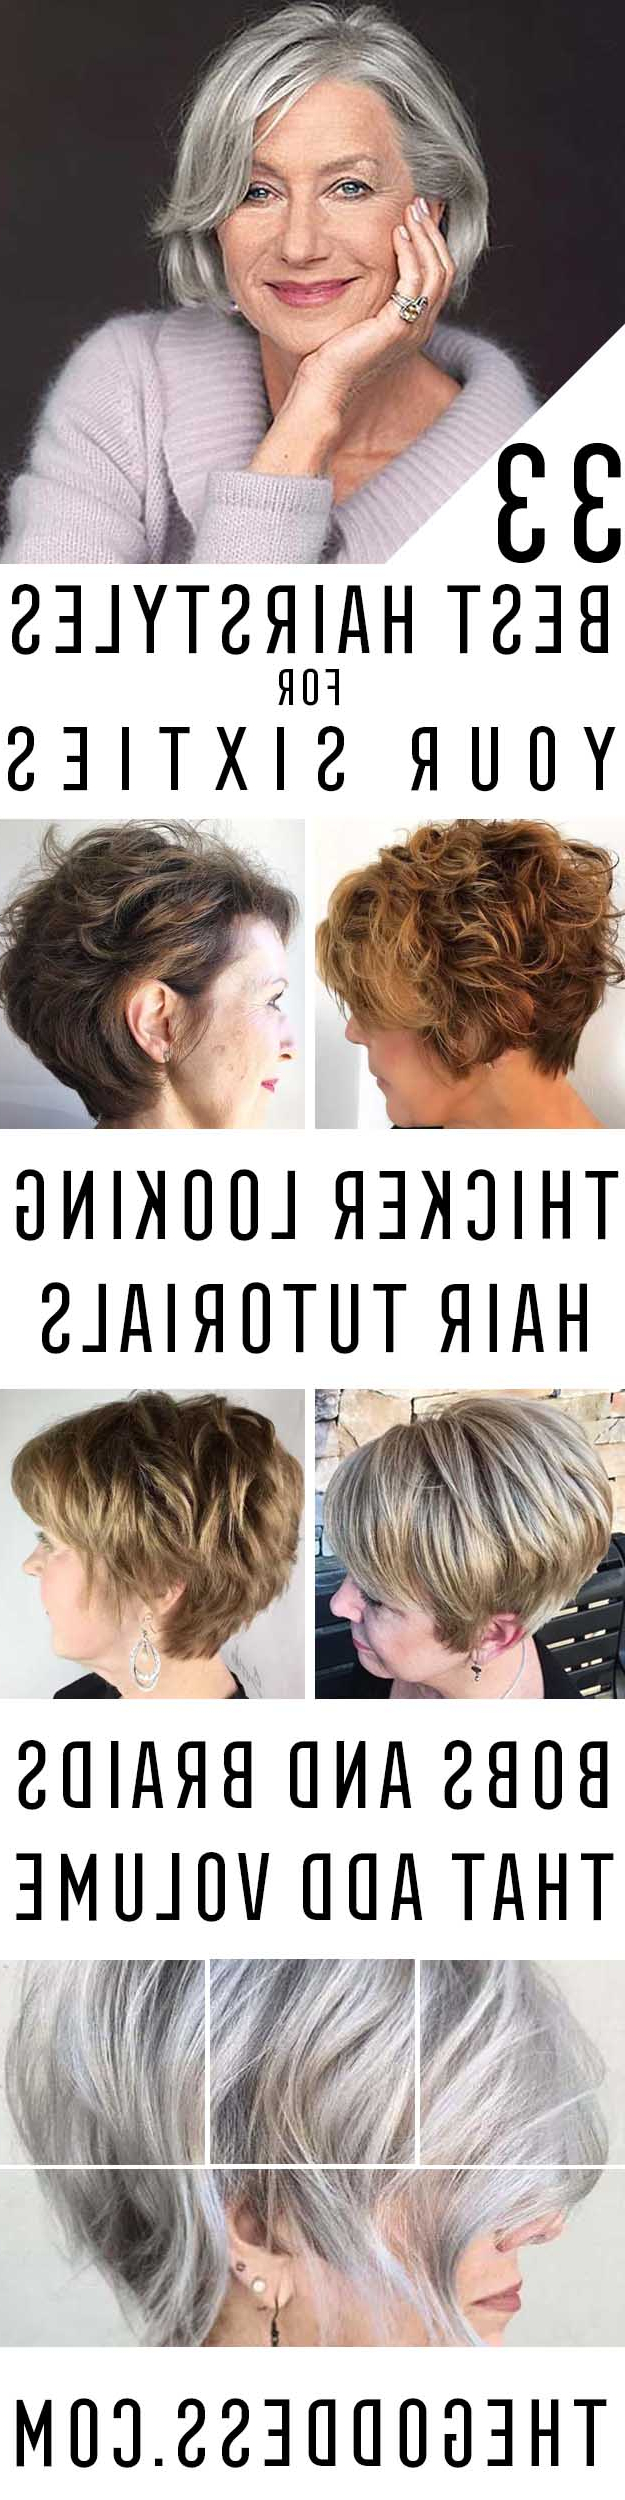 33 Best Hairstyles For Your 60S – The Goddess With Regard To Short Hairstyles For 60 Year Old Woman (View 17 of 25)